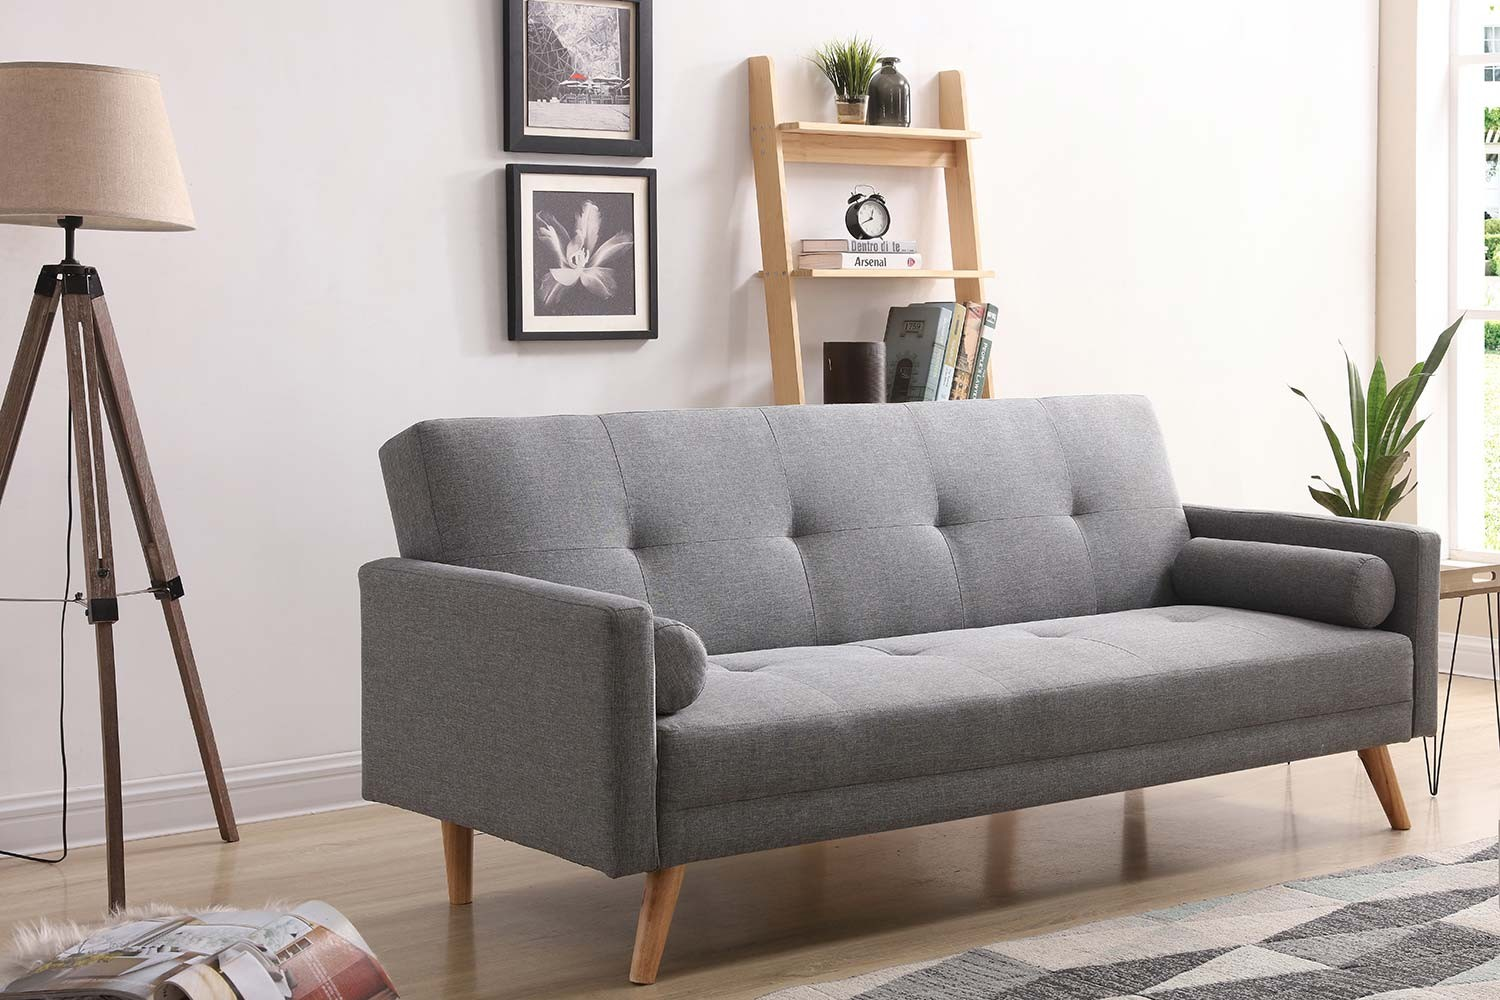 Vanso : canapé scandinave convertible 3 places gris